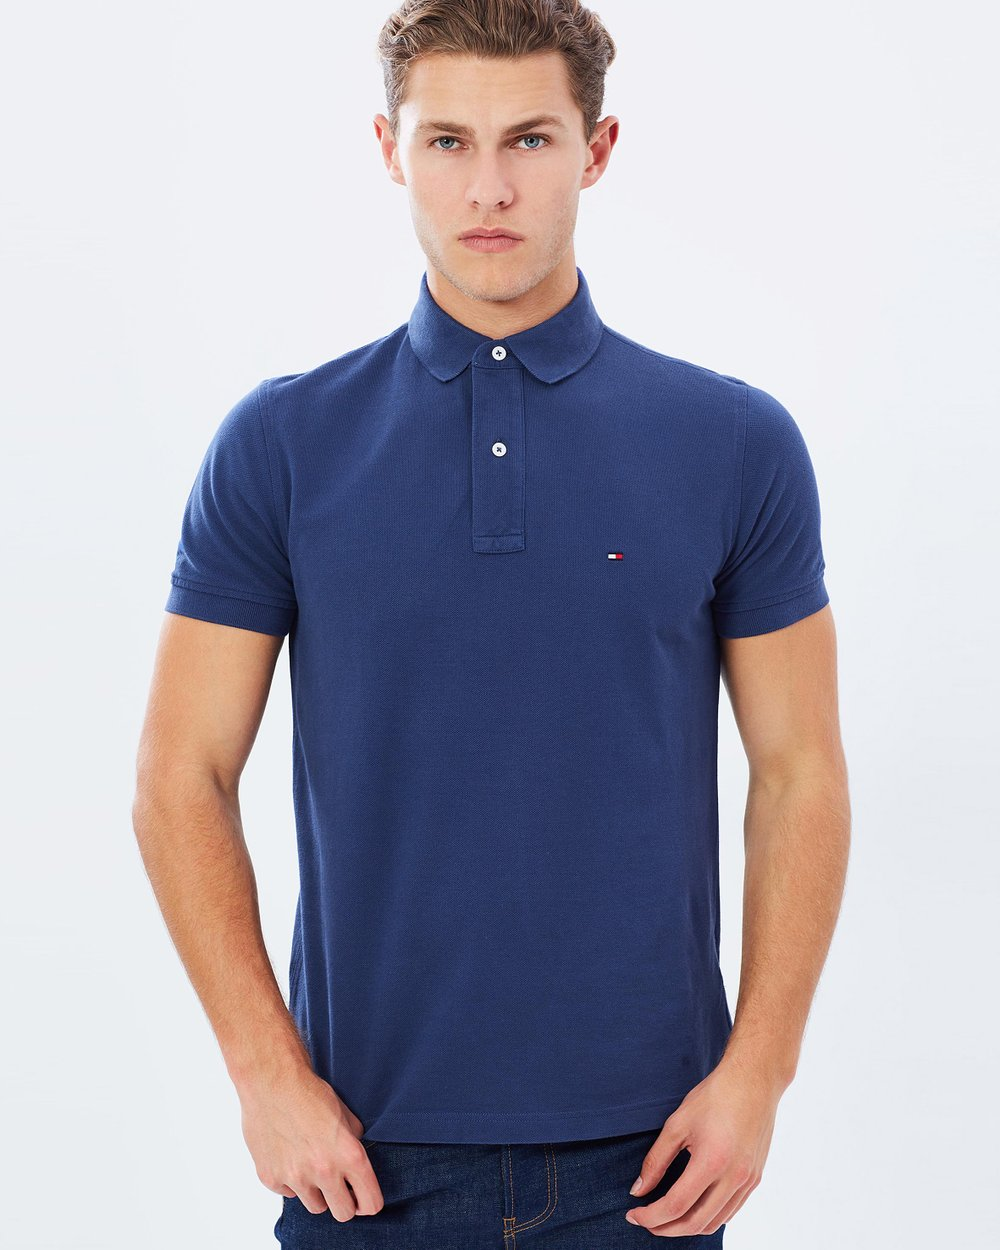 422a6a3938eee9 Tommy Knit SS Polo by Tommy Hilfiger Online